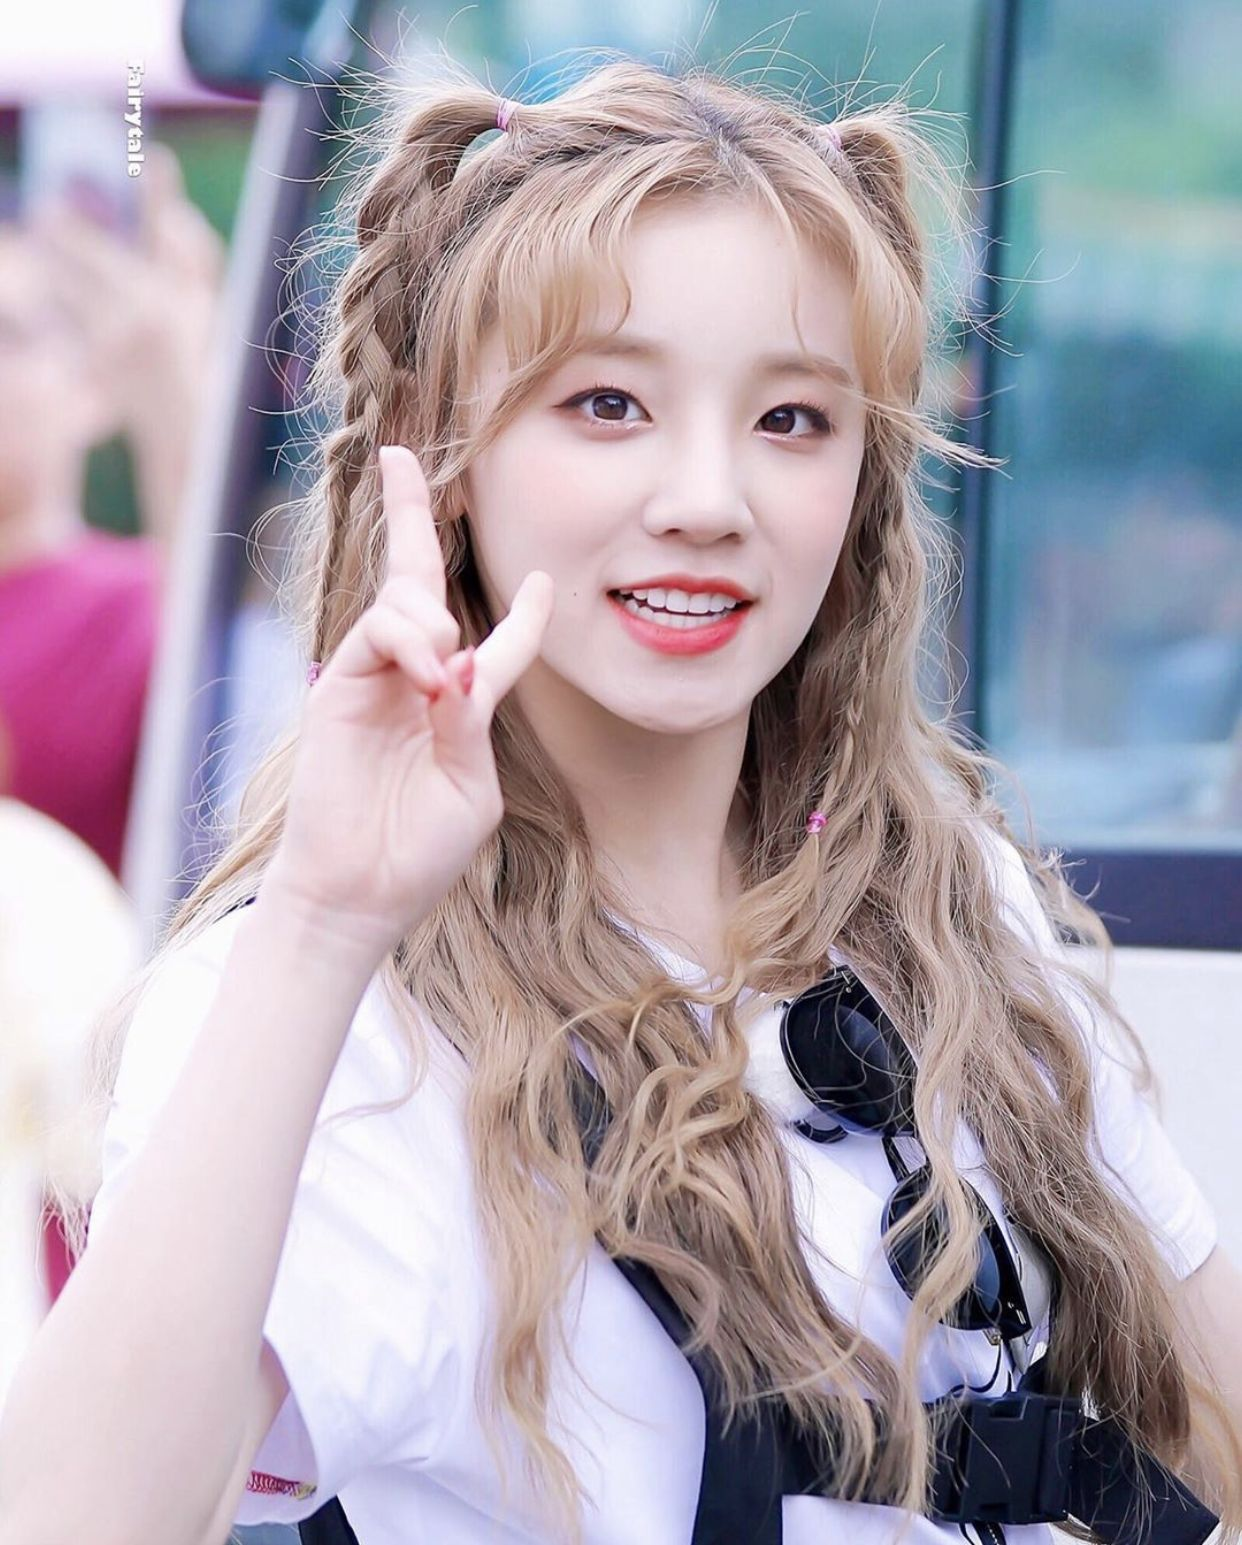 G Idle Yuqi Hair Styles Kpop Hair Korean Hairstyle